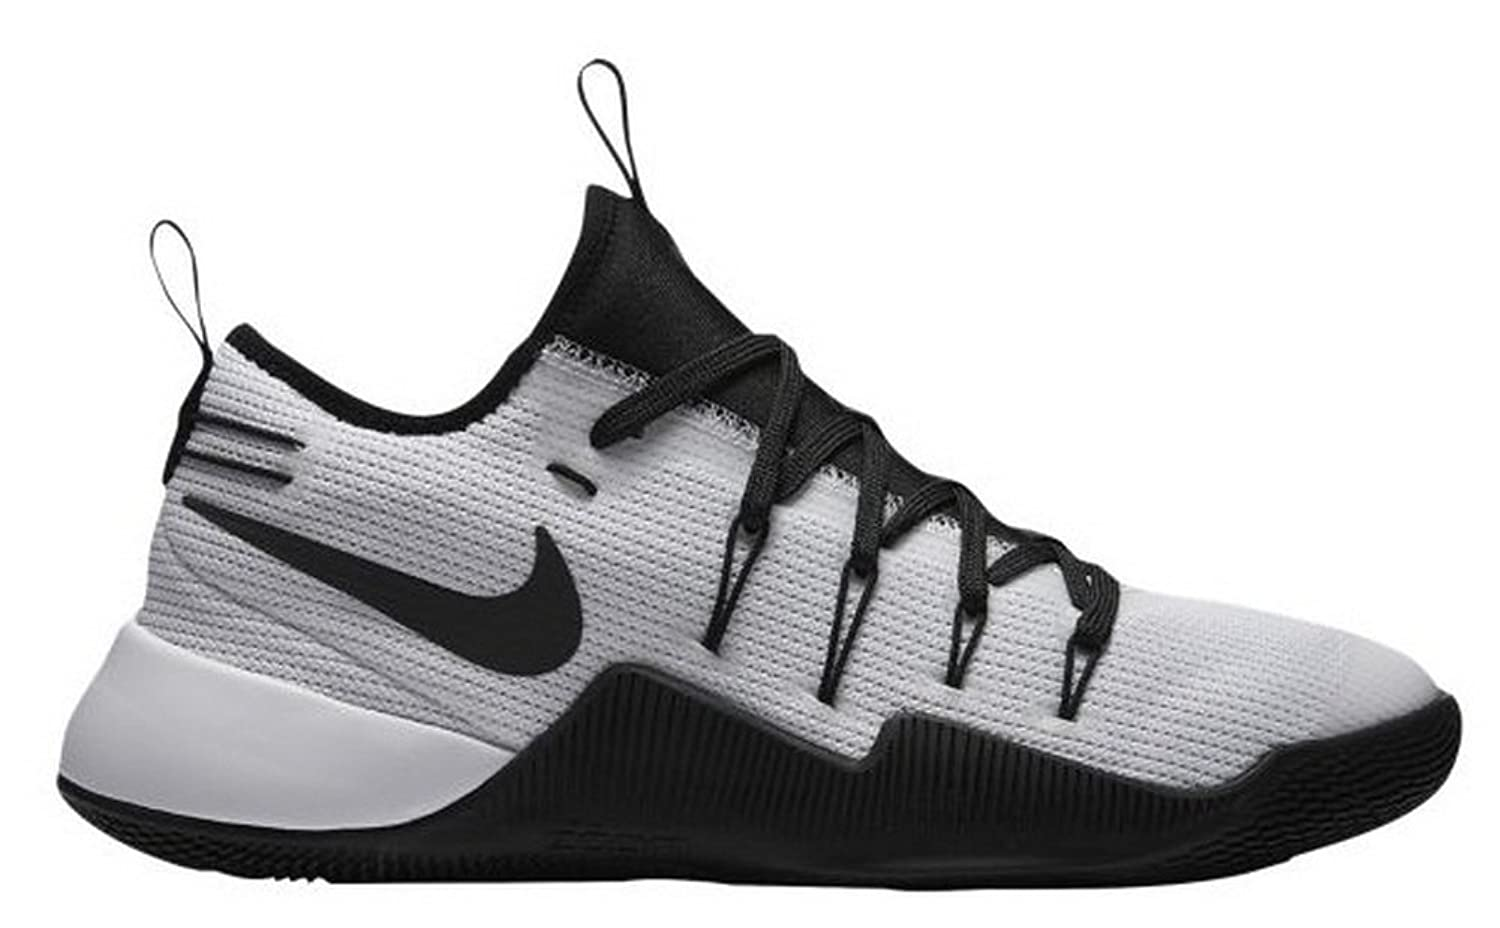 New Nike Hypershift TB Mens Basketball Shoe White 844387 100